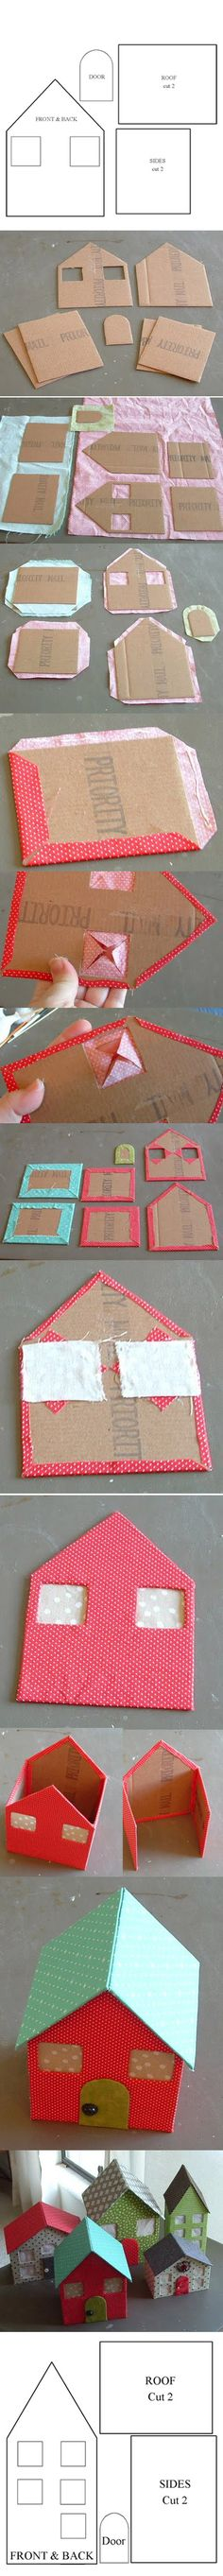 Christmas town with fabric scraps and cardboard